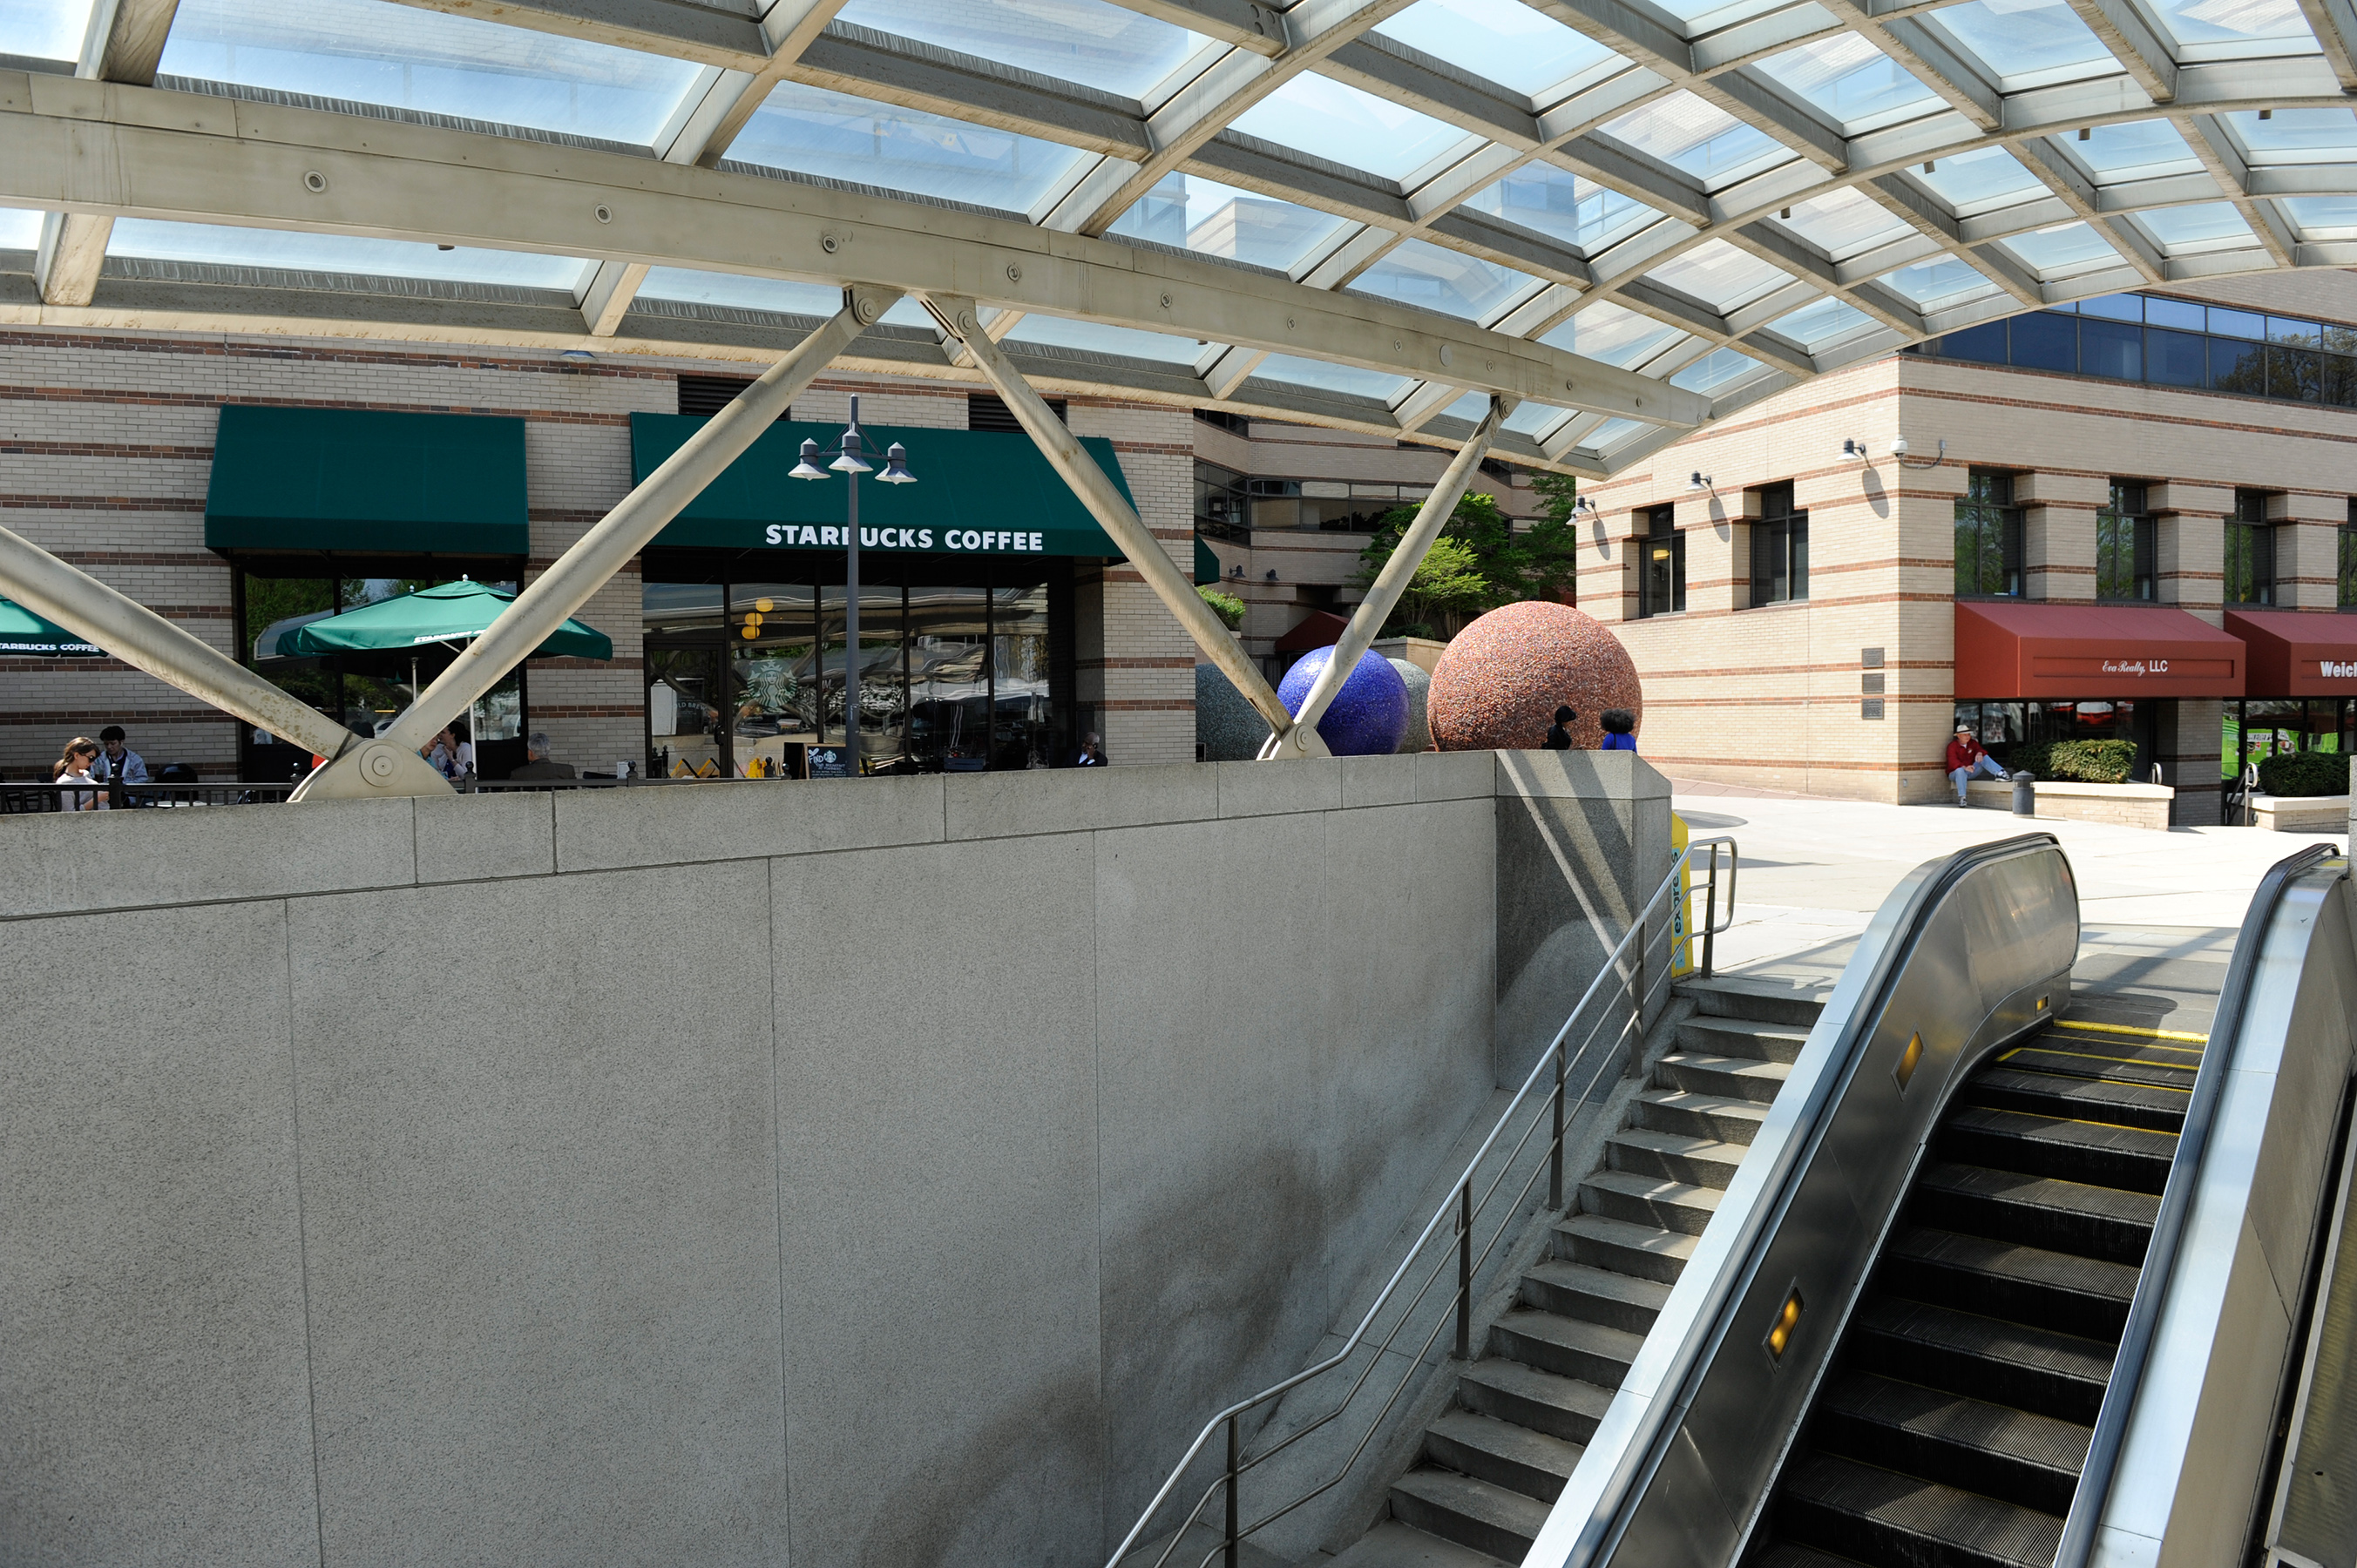 No New Date For Delayed 3 Year Van Ness Escalator Project